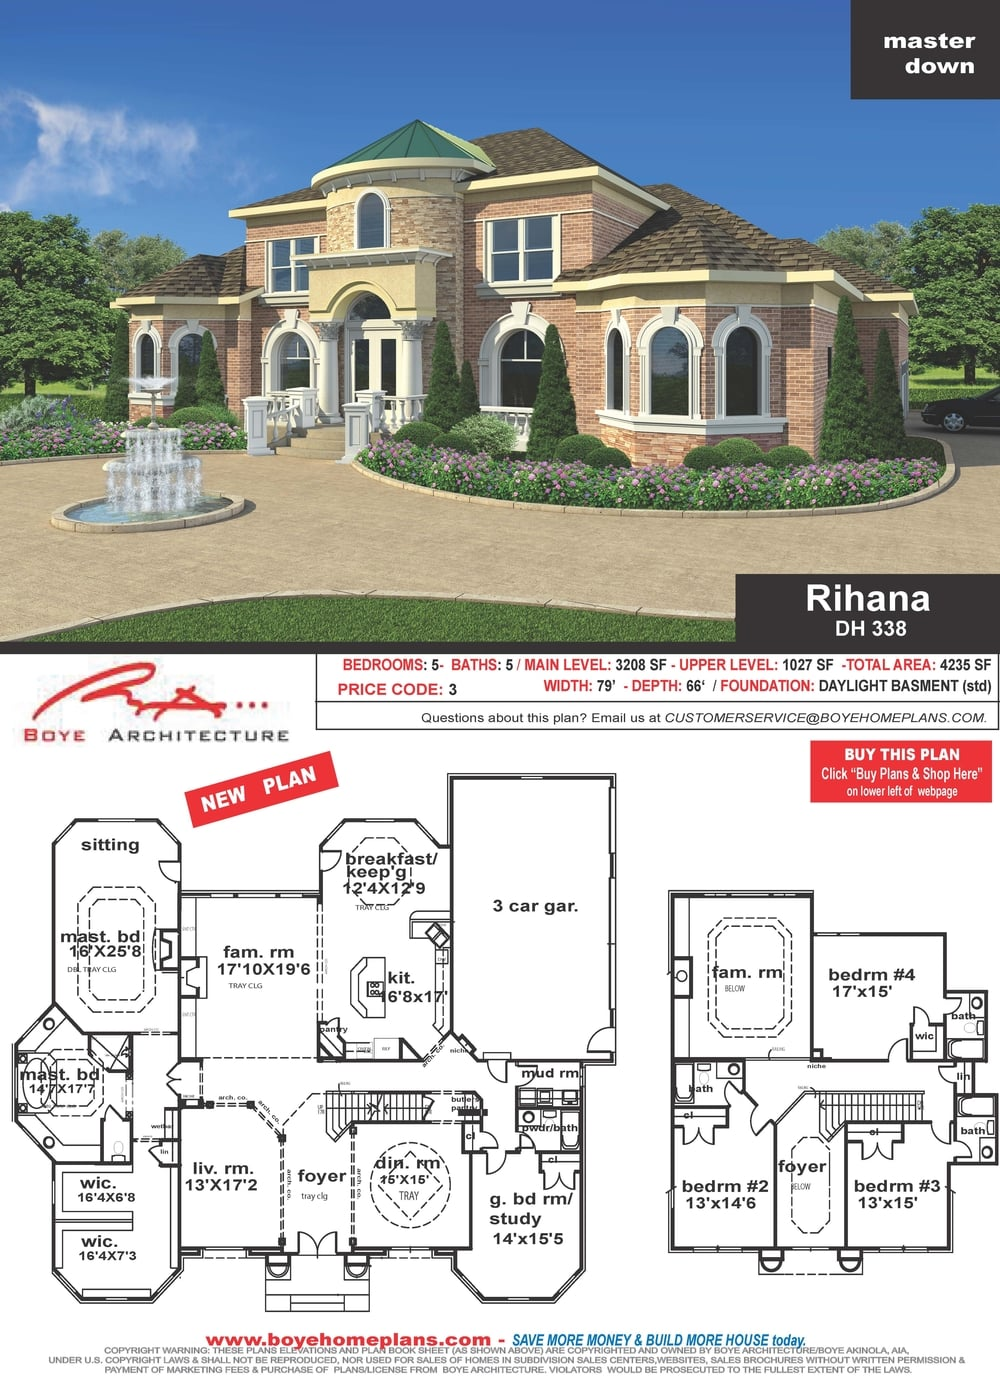 RIHANA PLAN (click picture to see featured plan)